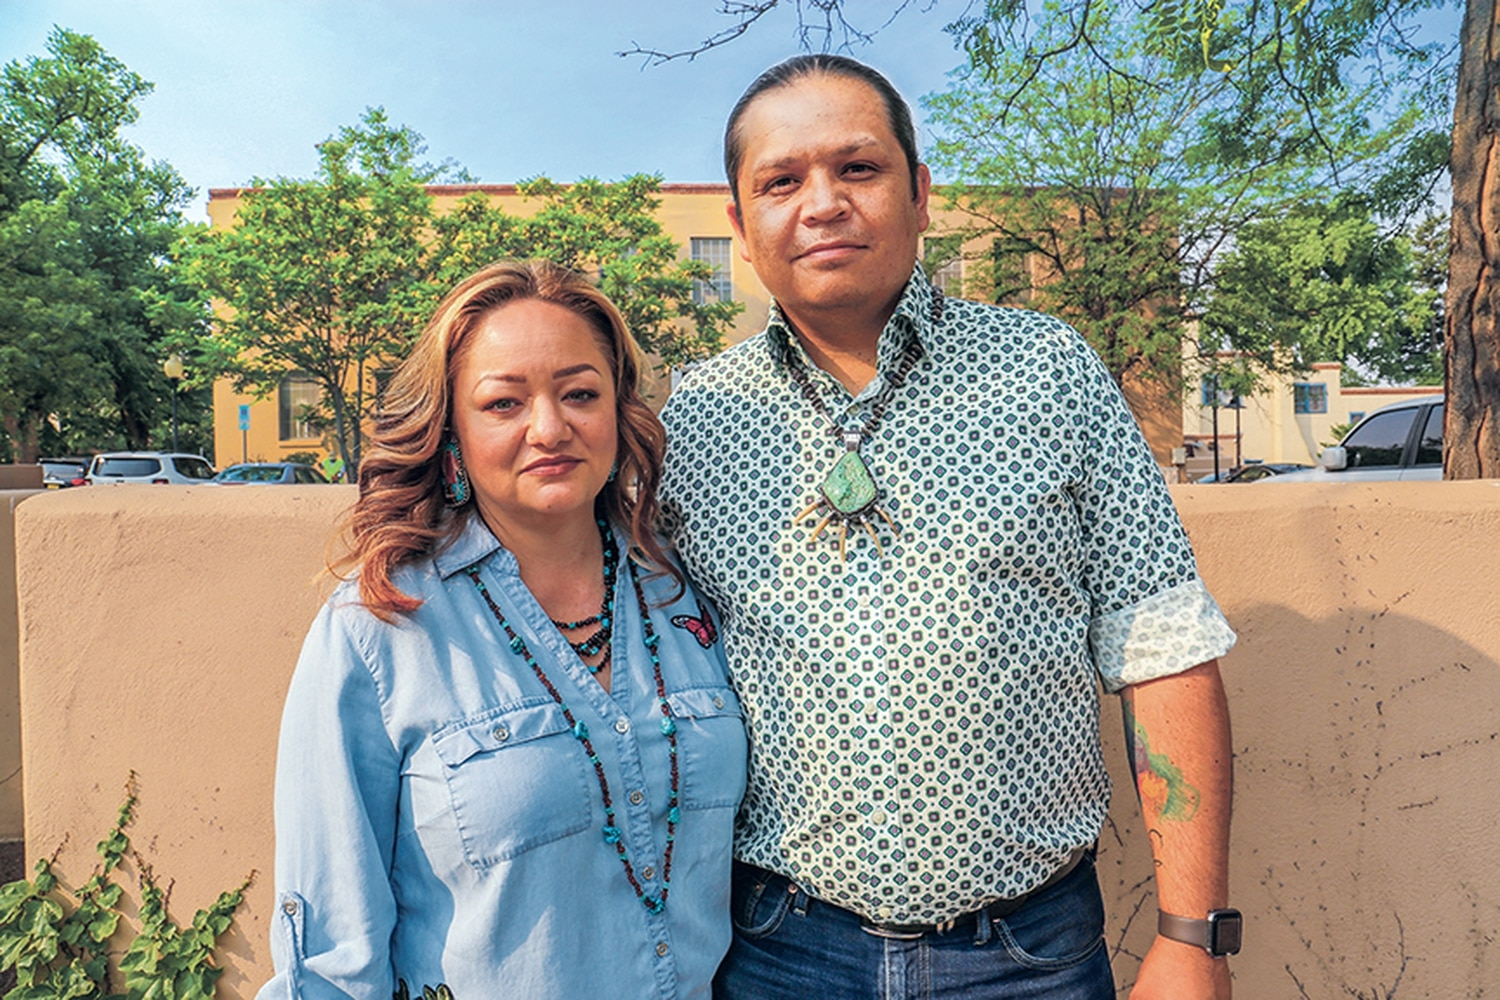 Cyndi Hall and her husband, Tsali, are among urban Indians from faraway tribes who have trouble getting services at the Santa Fe Indian Hospital due to a resource crunch.